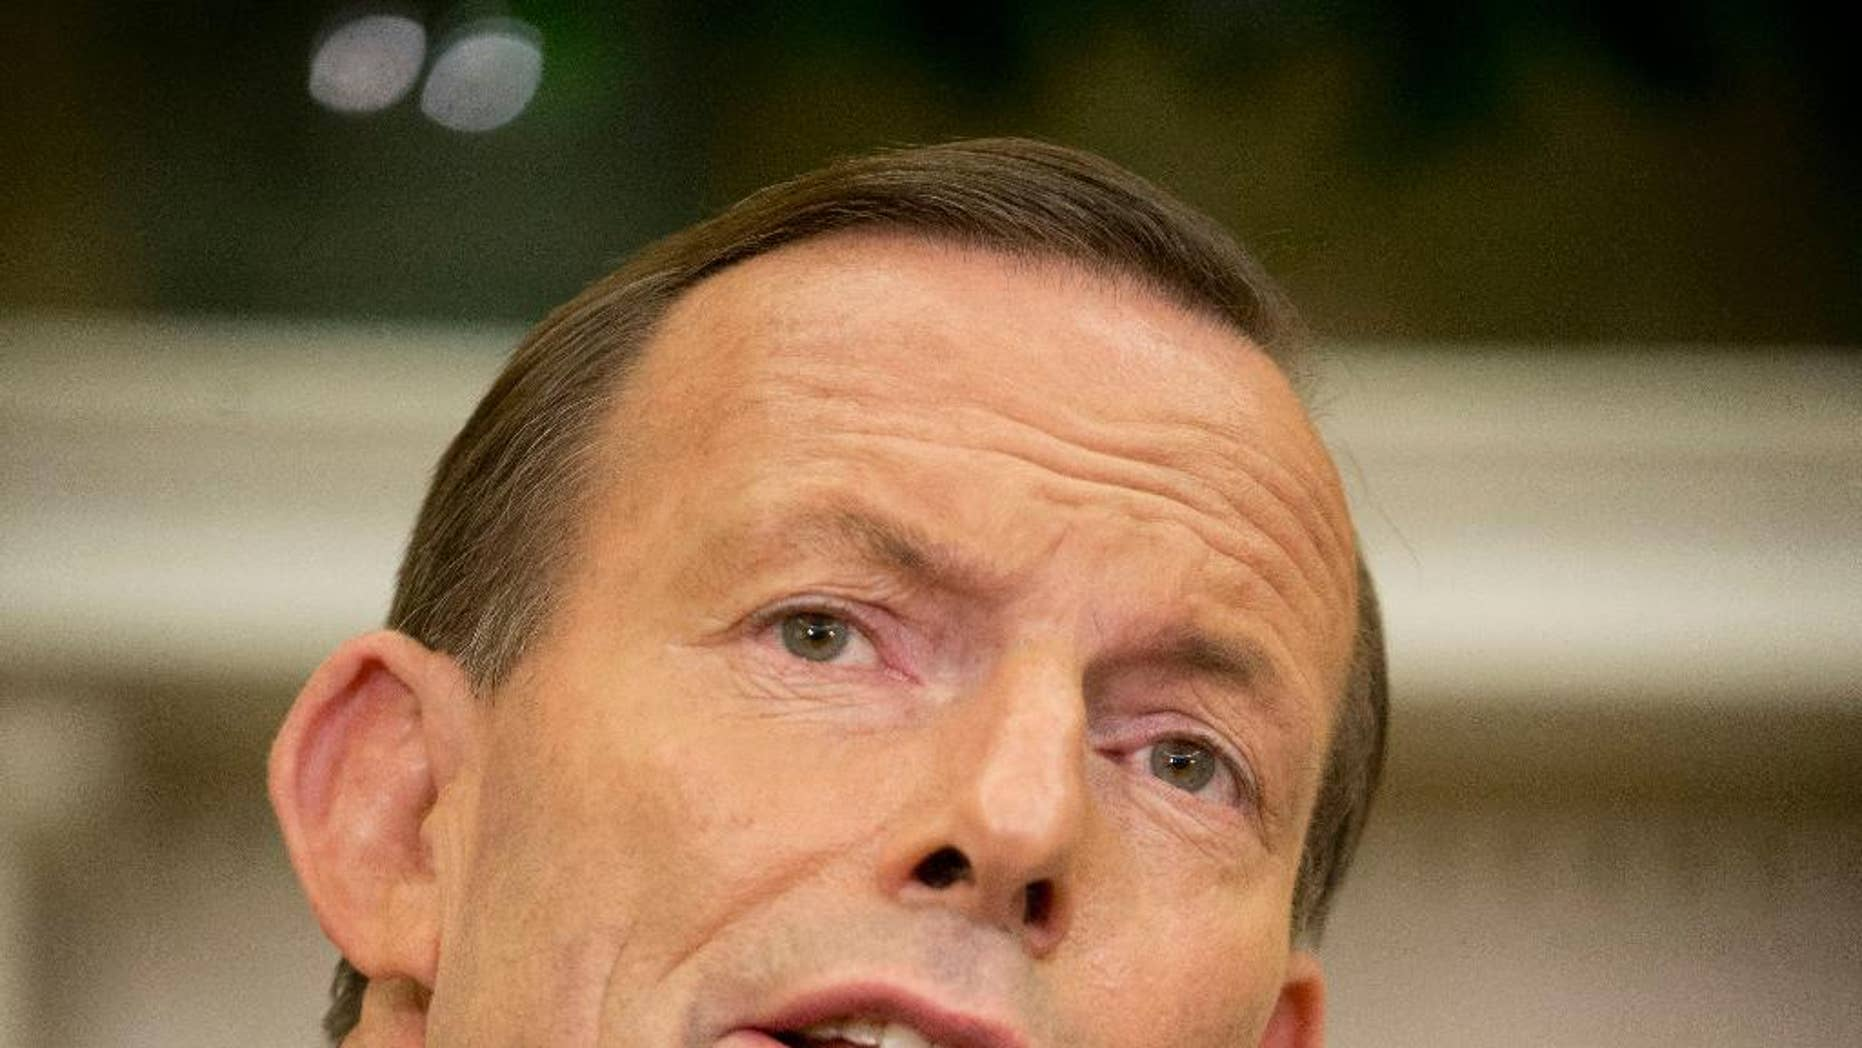 FILE - Australian Prime Minister Tony Abbott speaks during his meeting with President Barack Obama, in this Thursday, June 12, 2014 file photo taken in the Oval Office of the White House in Washington. Abbott on Saturday July 19, 2014 called for an independent, international investigation into the downing of a Malaysian jetliner in Ukraine and demanded Russia's full cooperation. (AP Photo/Pablo Martinez Monsivais, File)